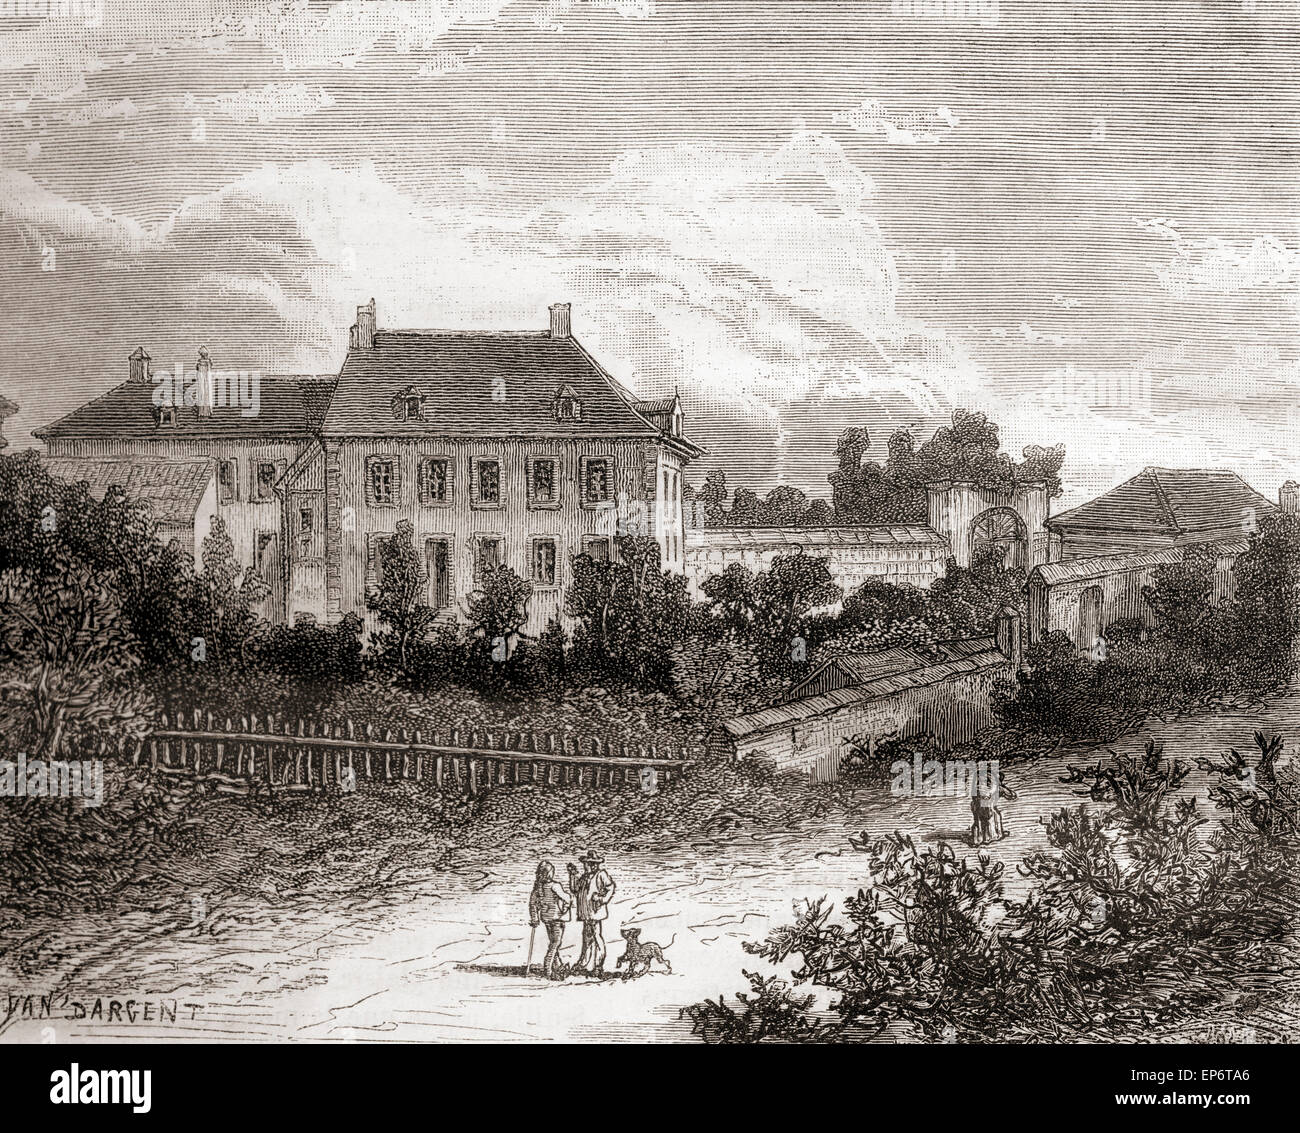 The house at Gras, near Chalon-sur-Saône, France where French inventor Nicephore Niepce developed heliography, - Stock Image